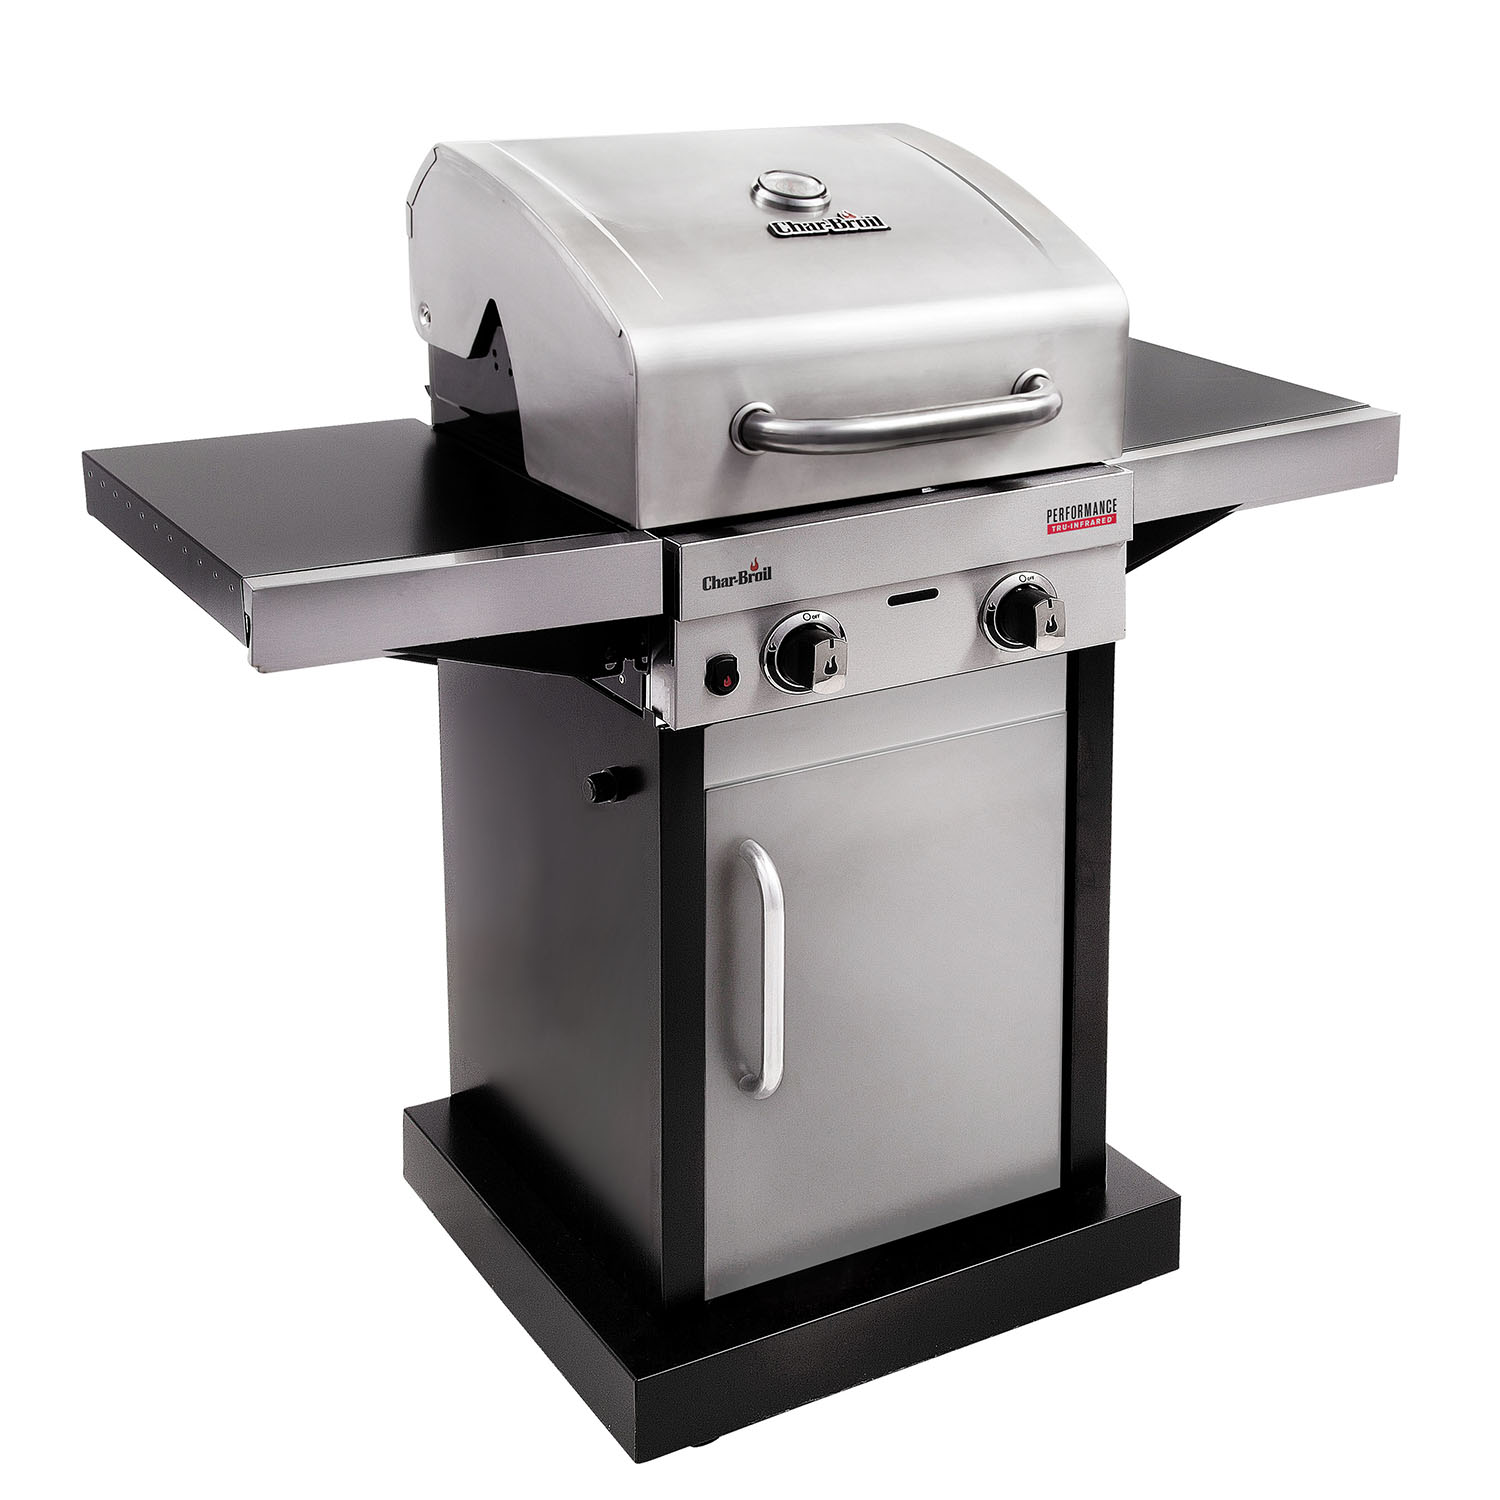 char broil performance 220s gas barbecue silver leekes